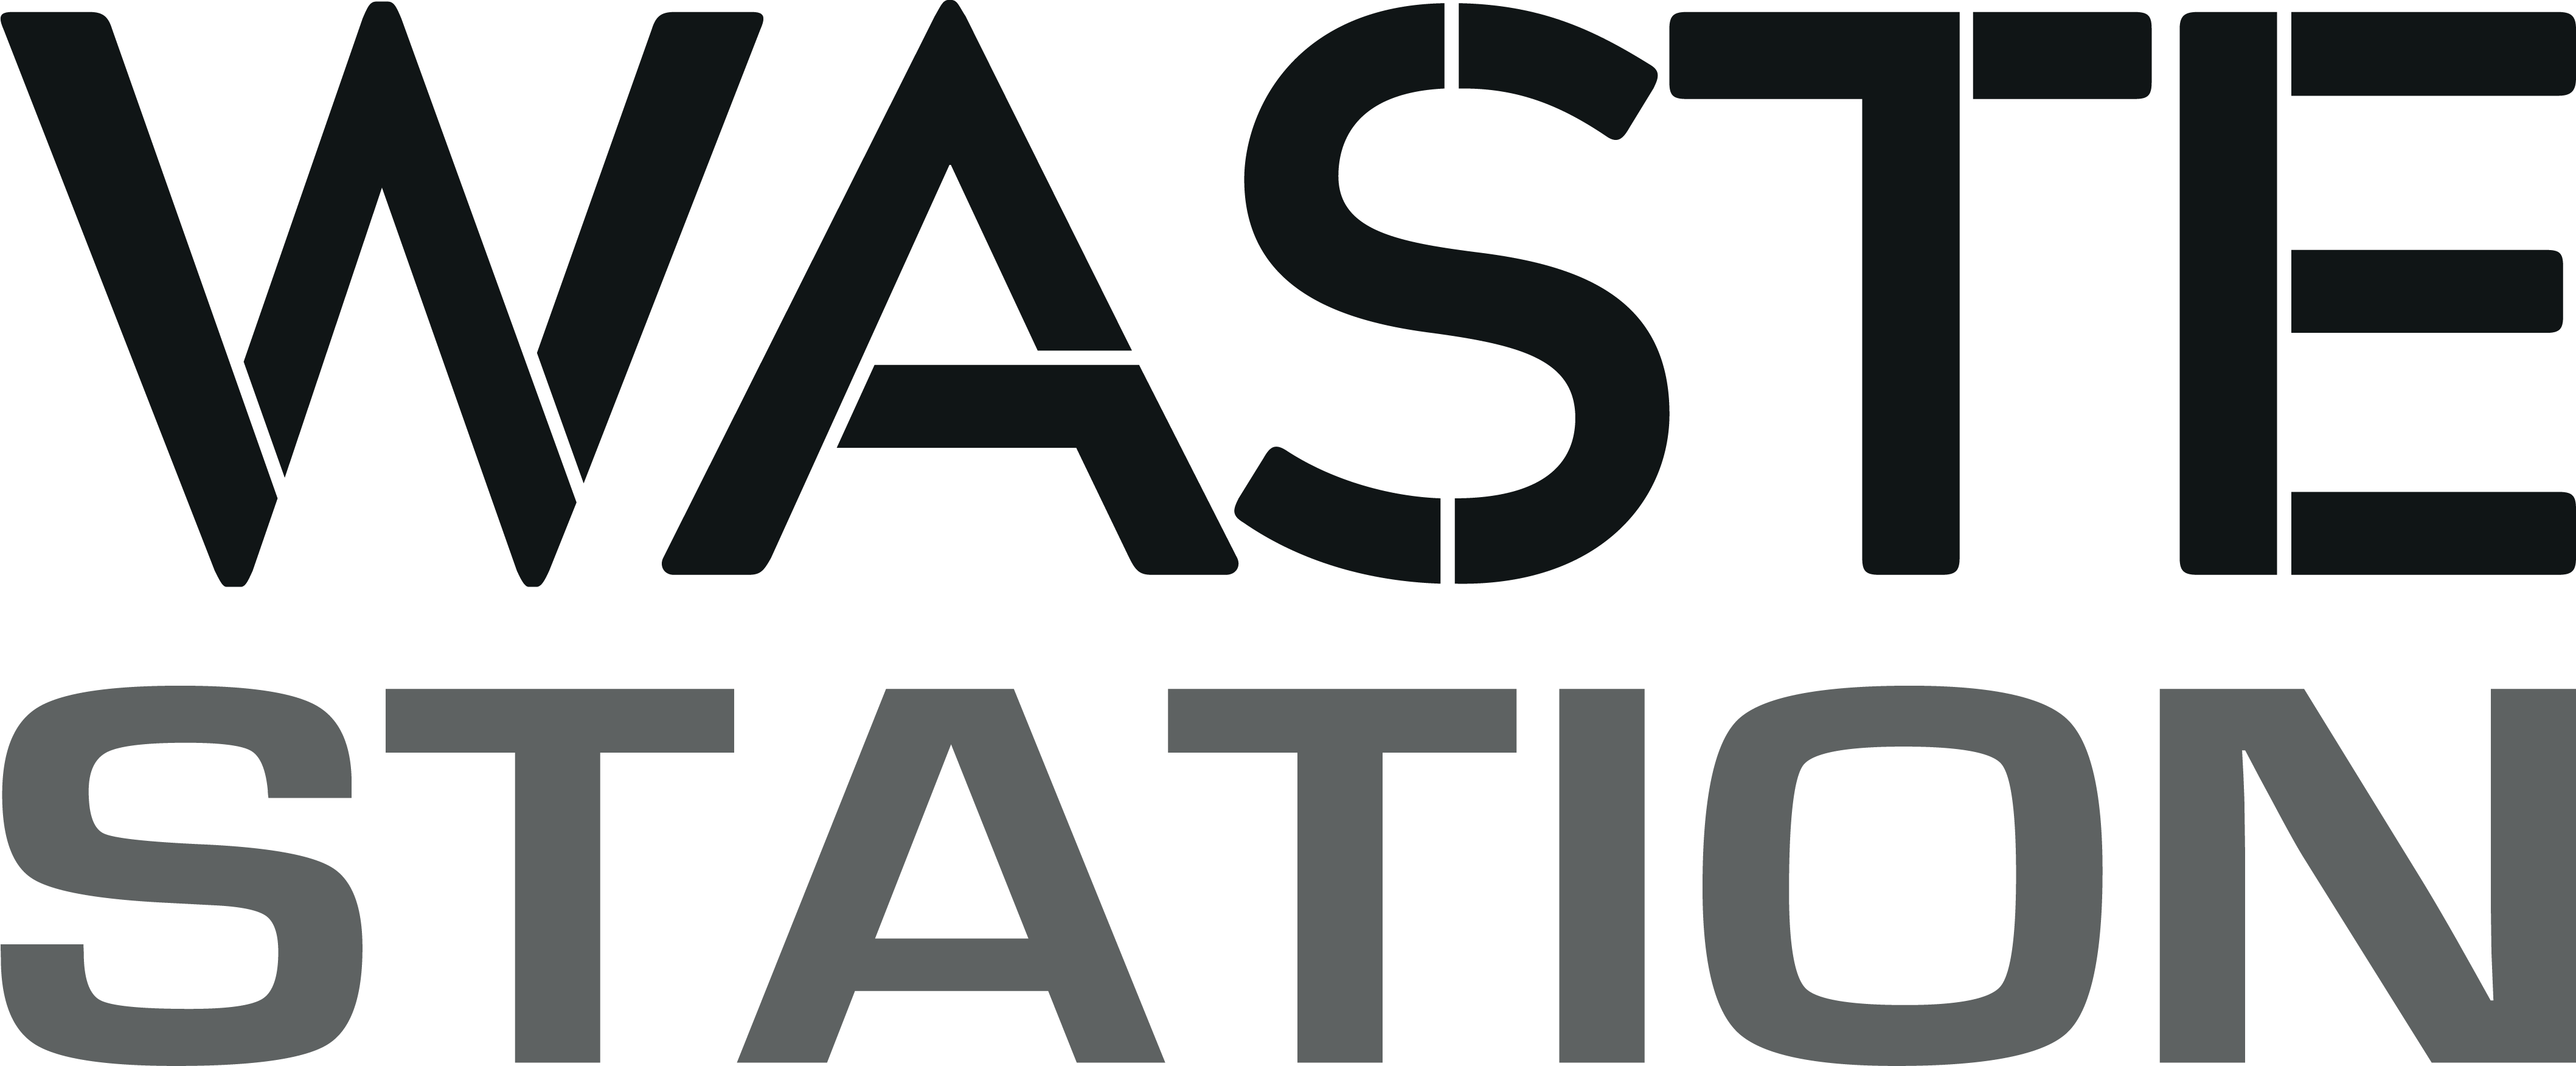 Waste Station Logo